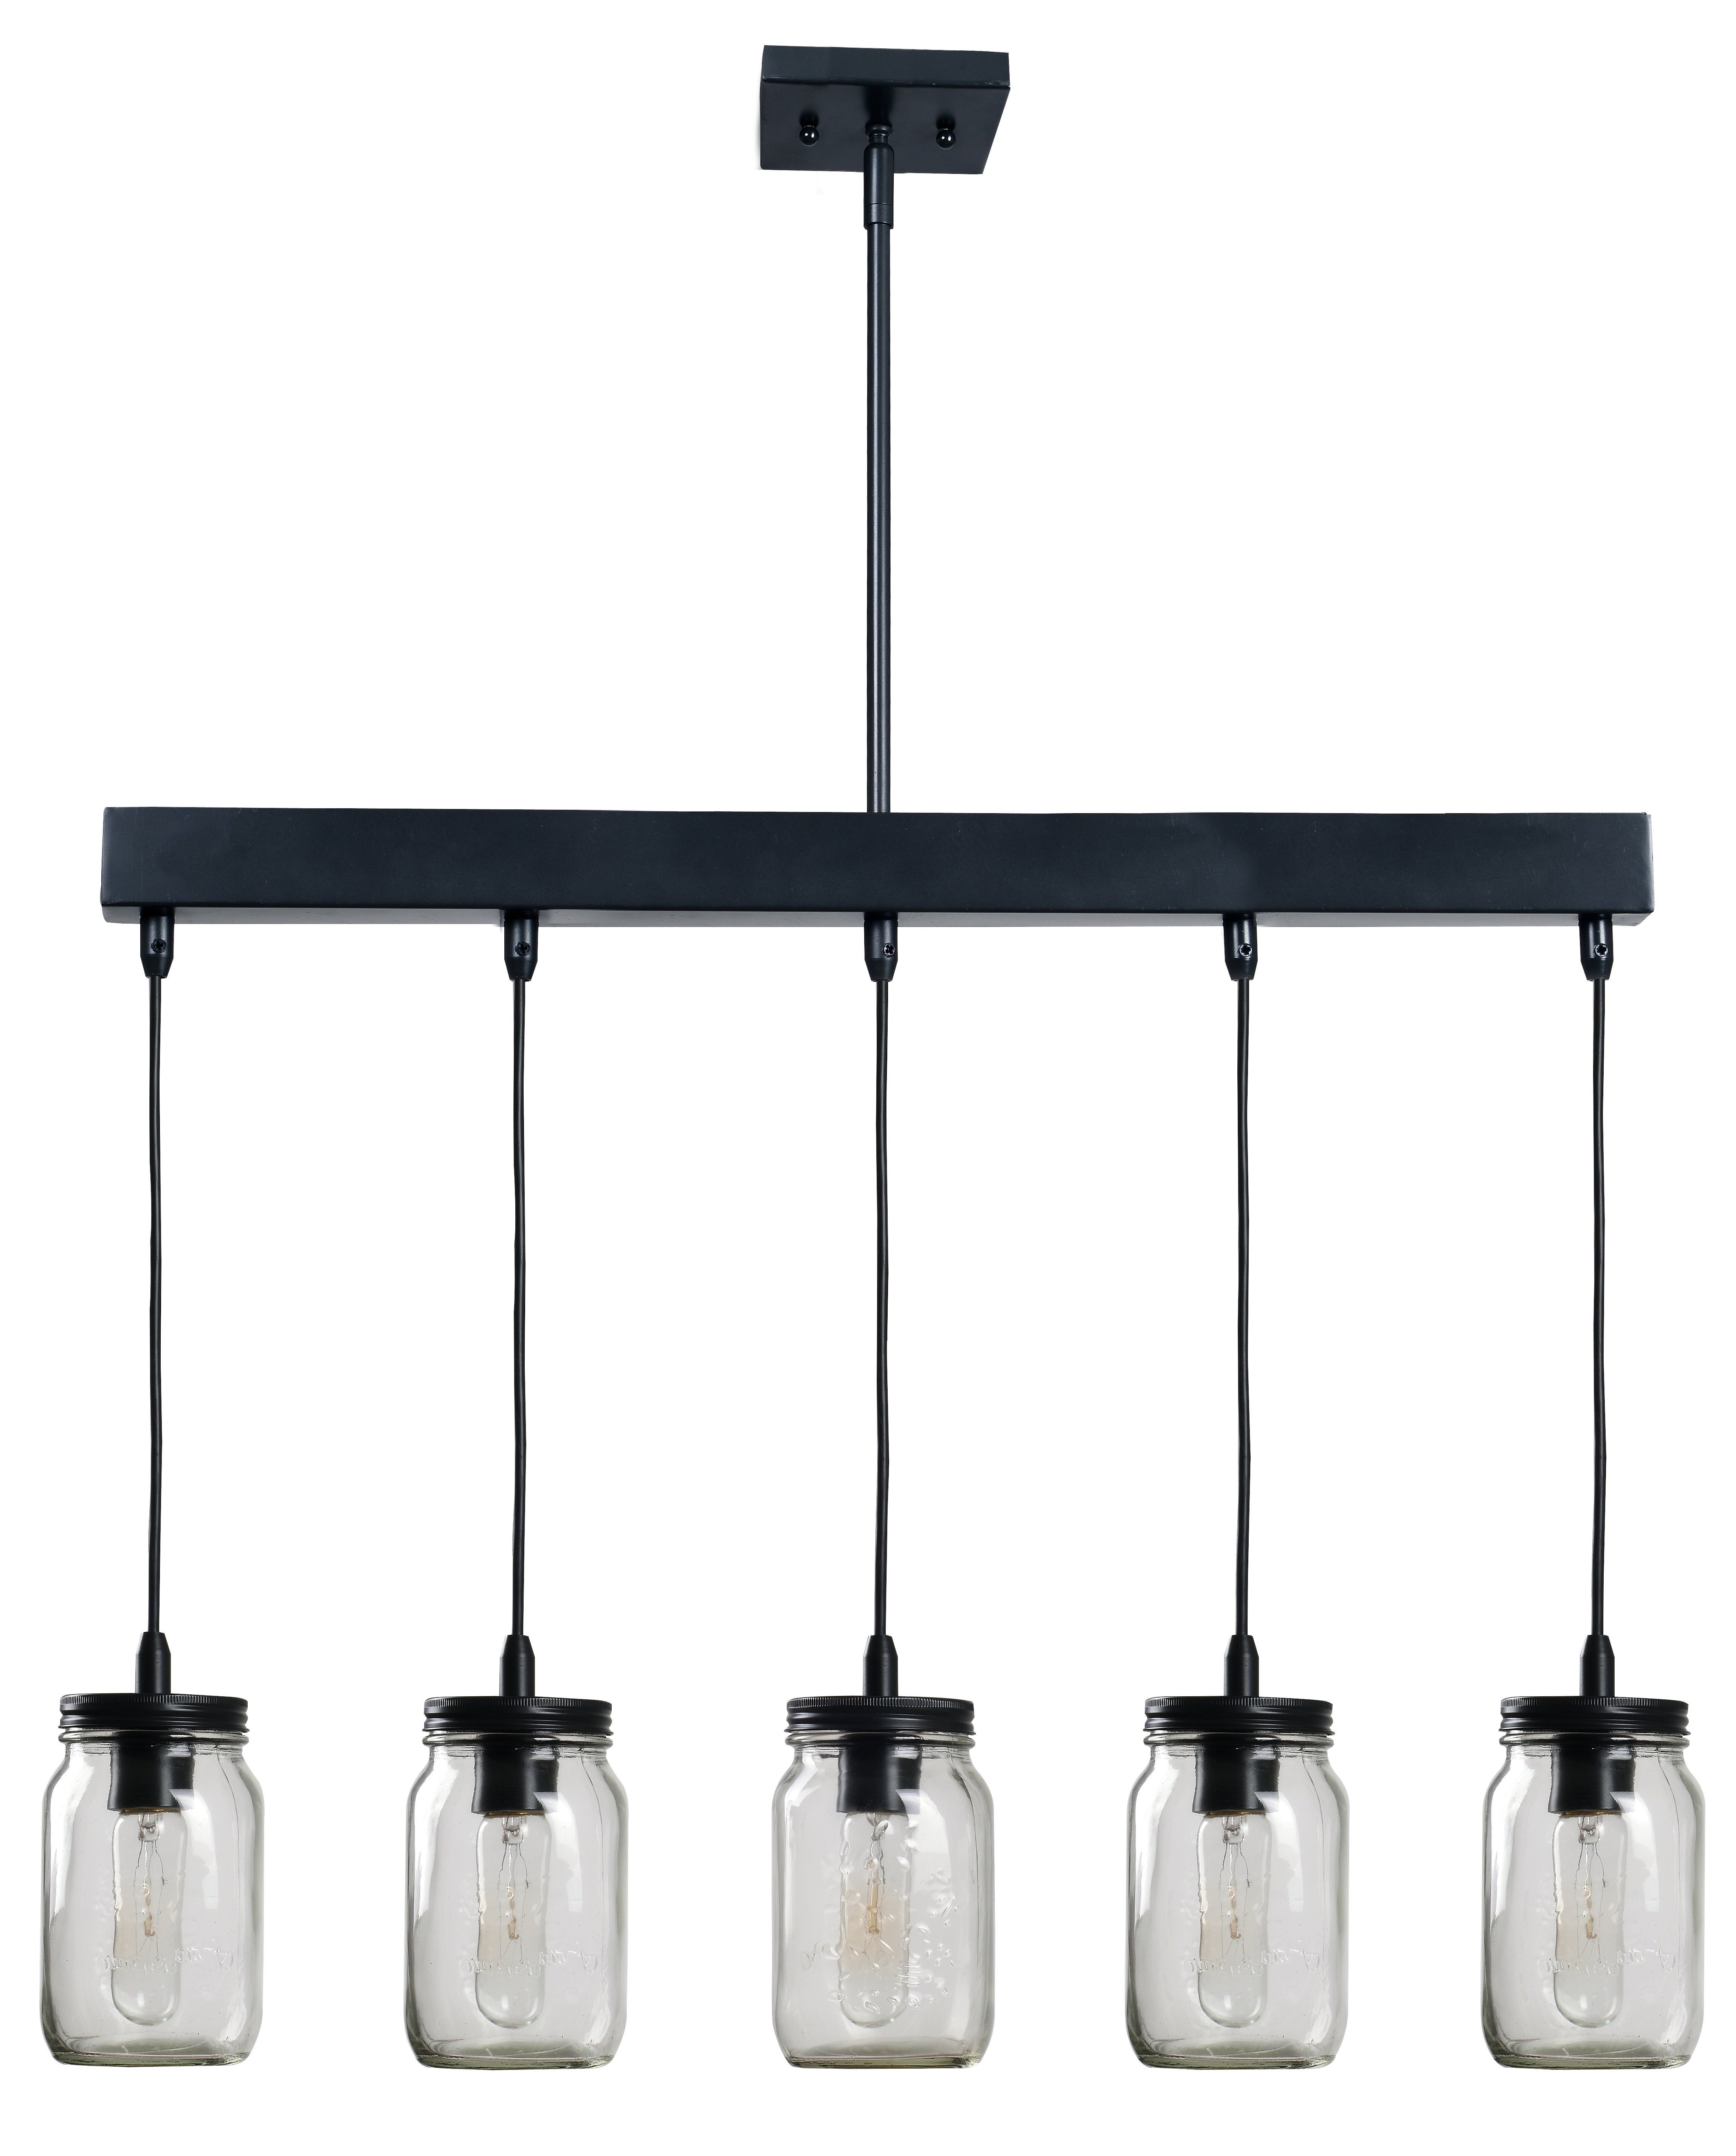 Thorne 5 Light Kitchen Island Pendants In Well Known Wednesbury 5 Light Kitchen Island Jar Pendant & Reviews (View 17 of 25)